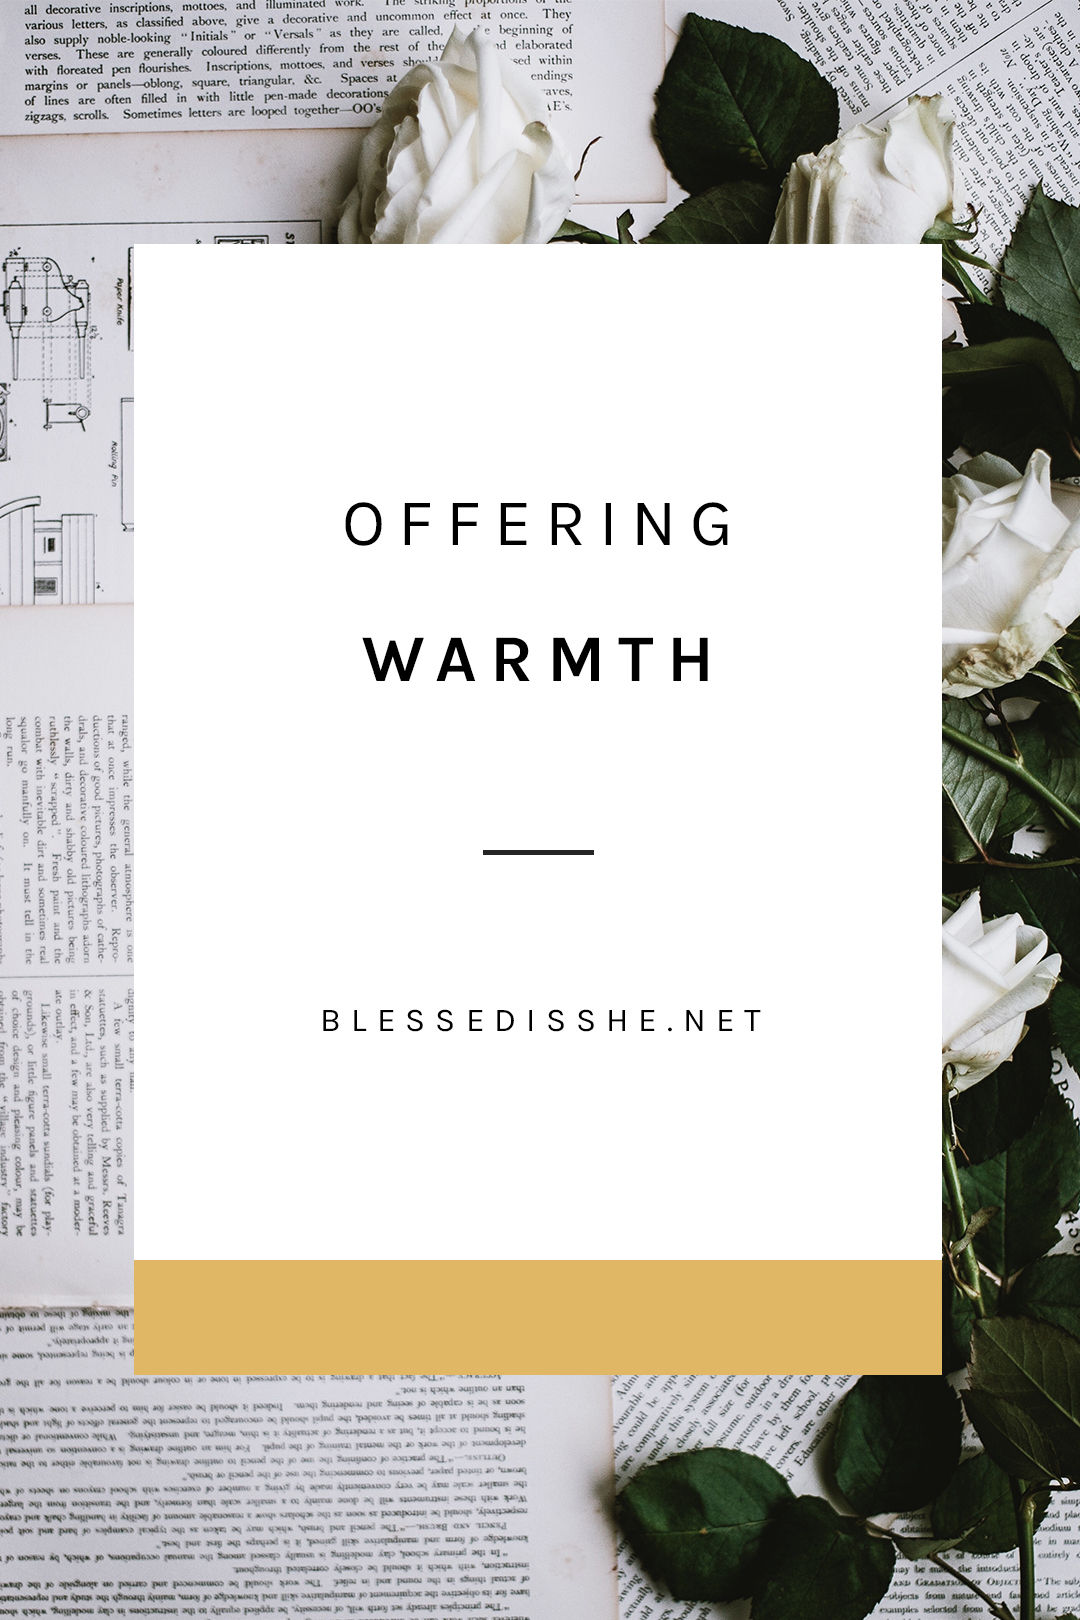 offering warmth and welcome